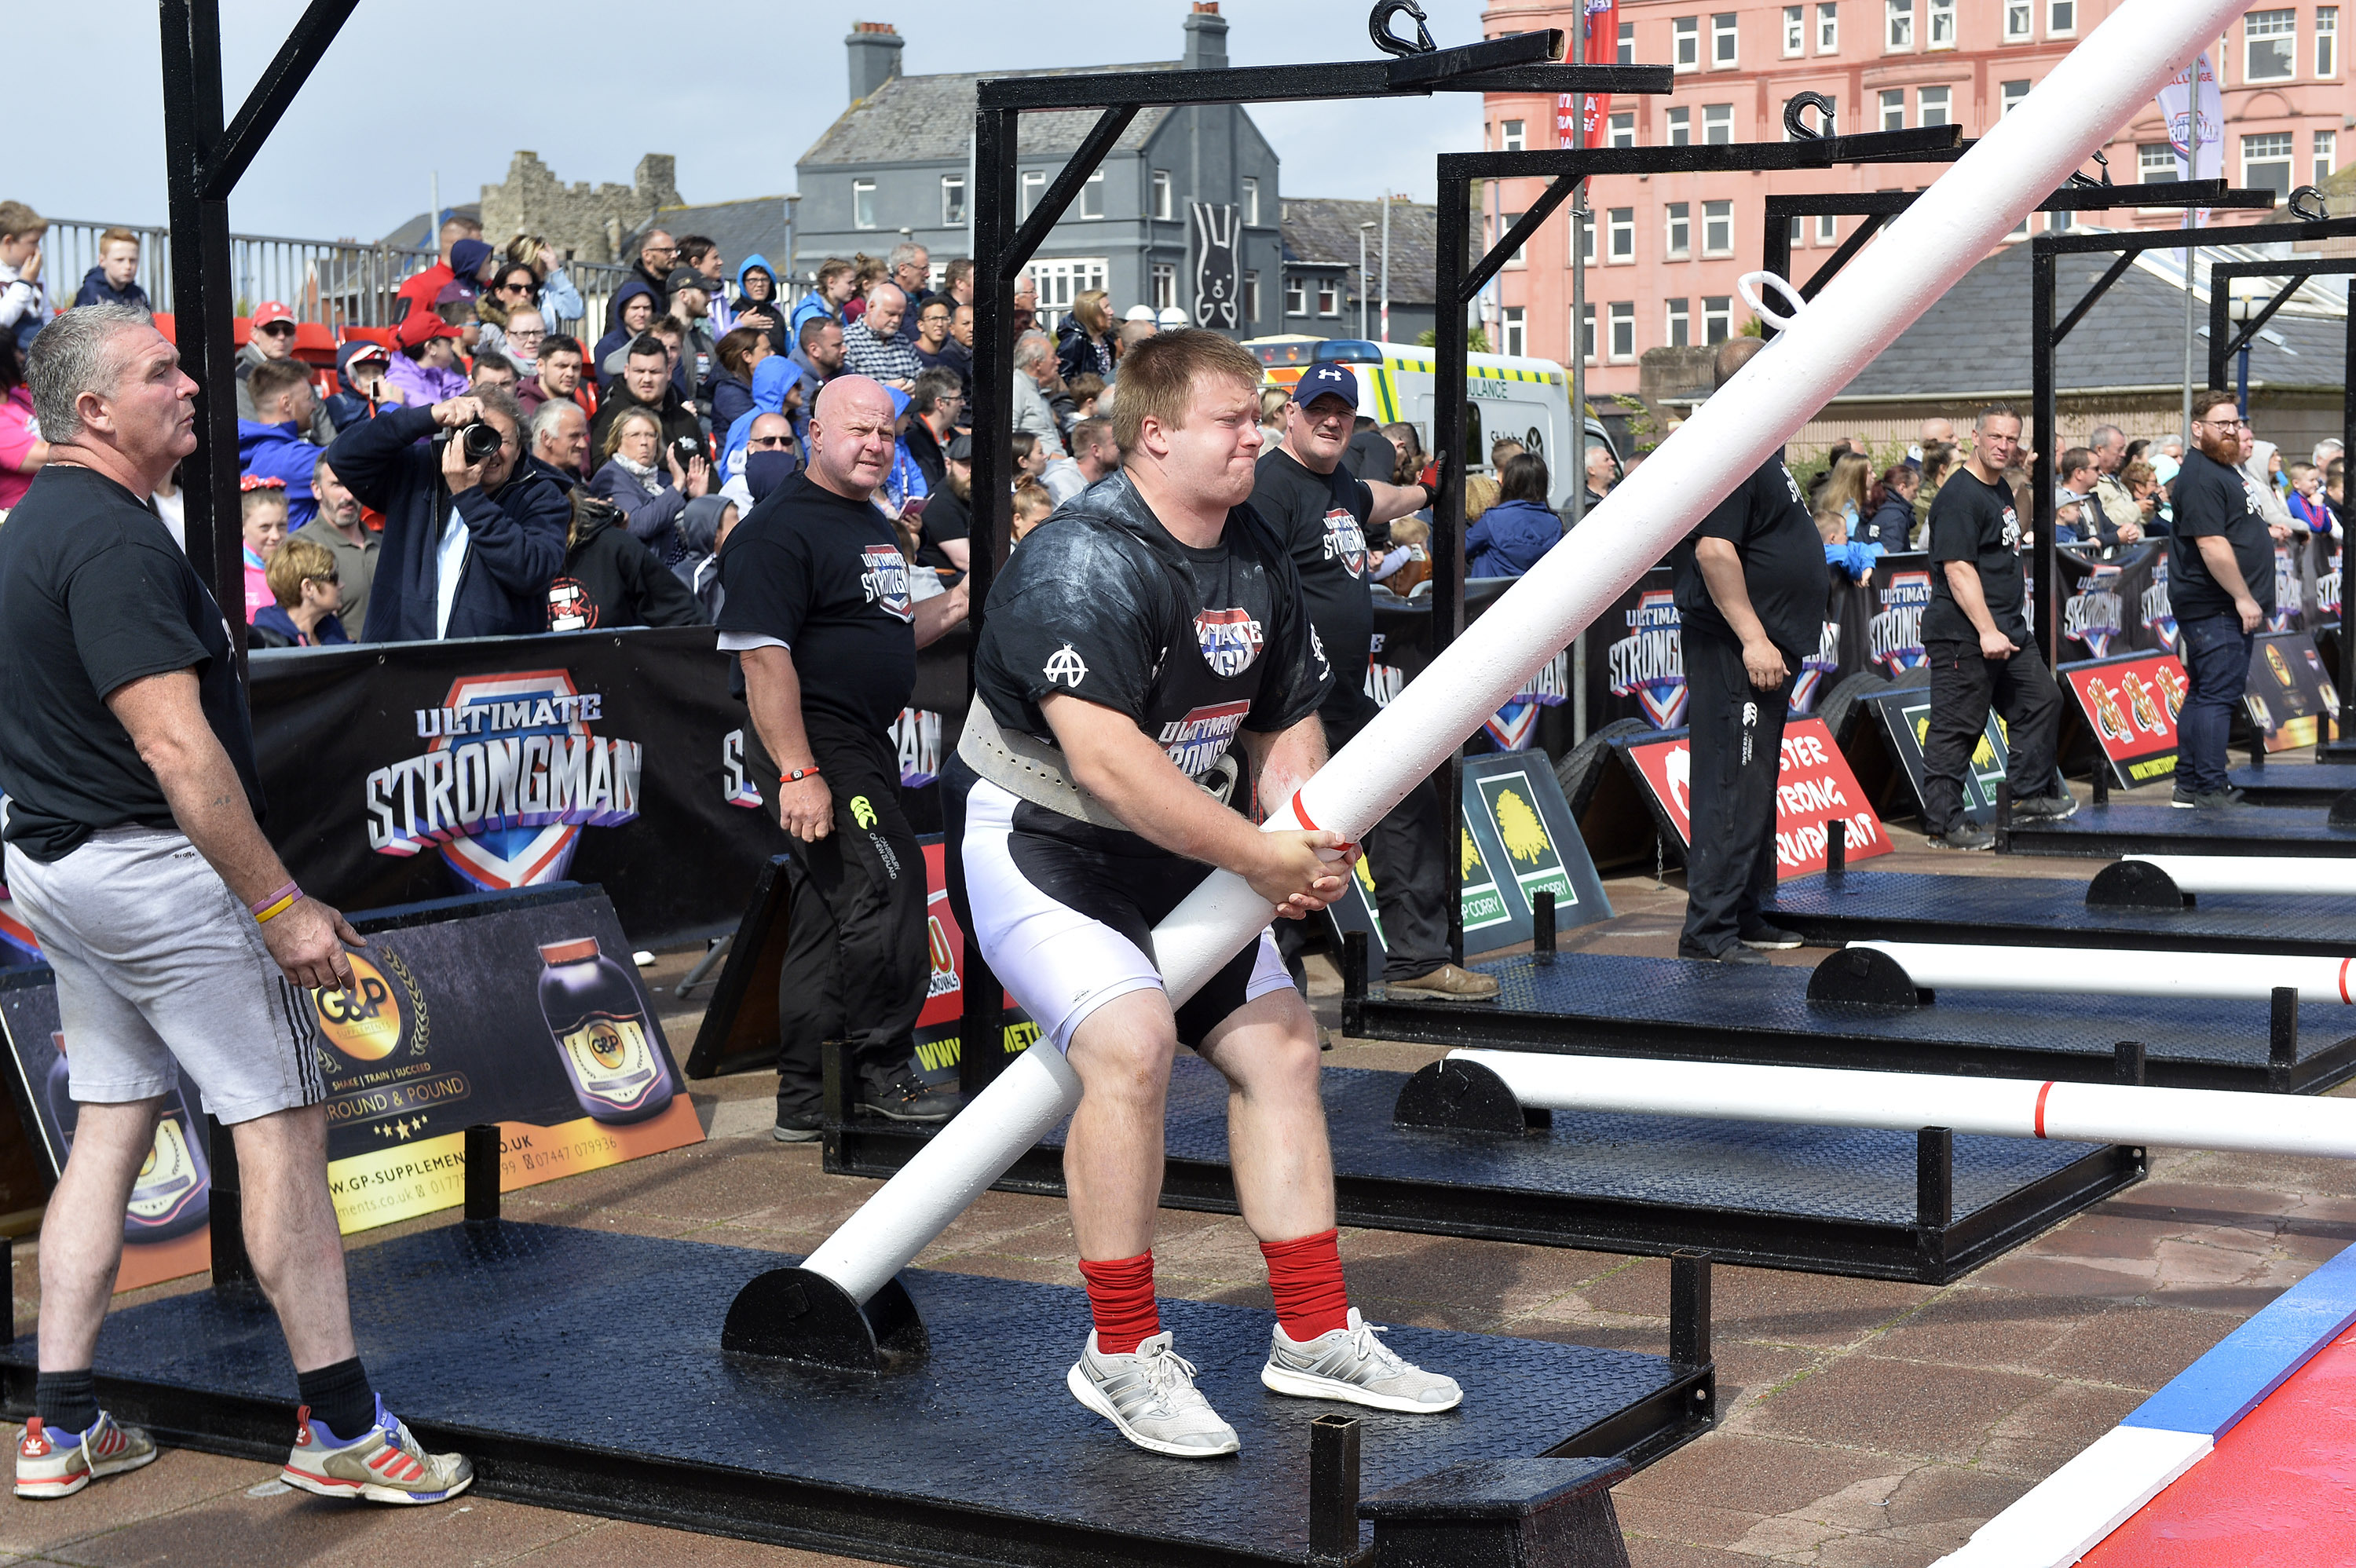 Ultimate Strongman Battle of Britain.